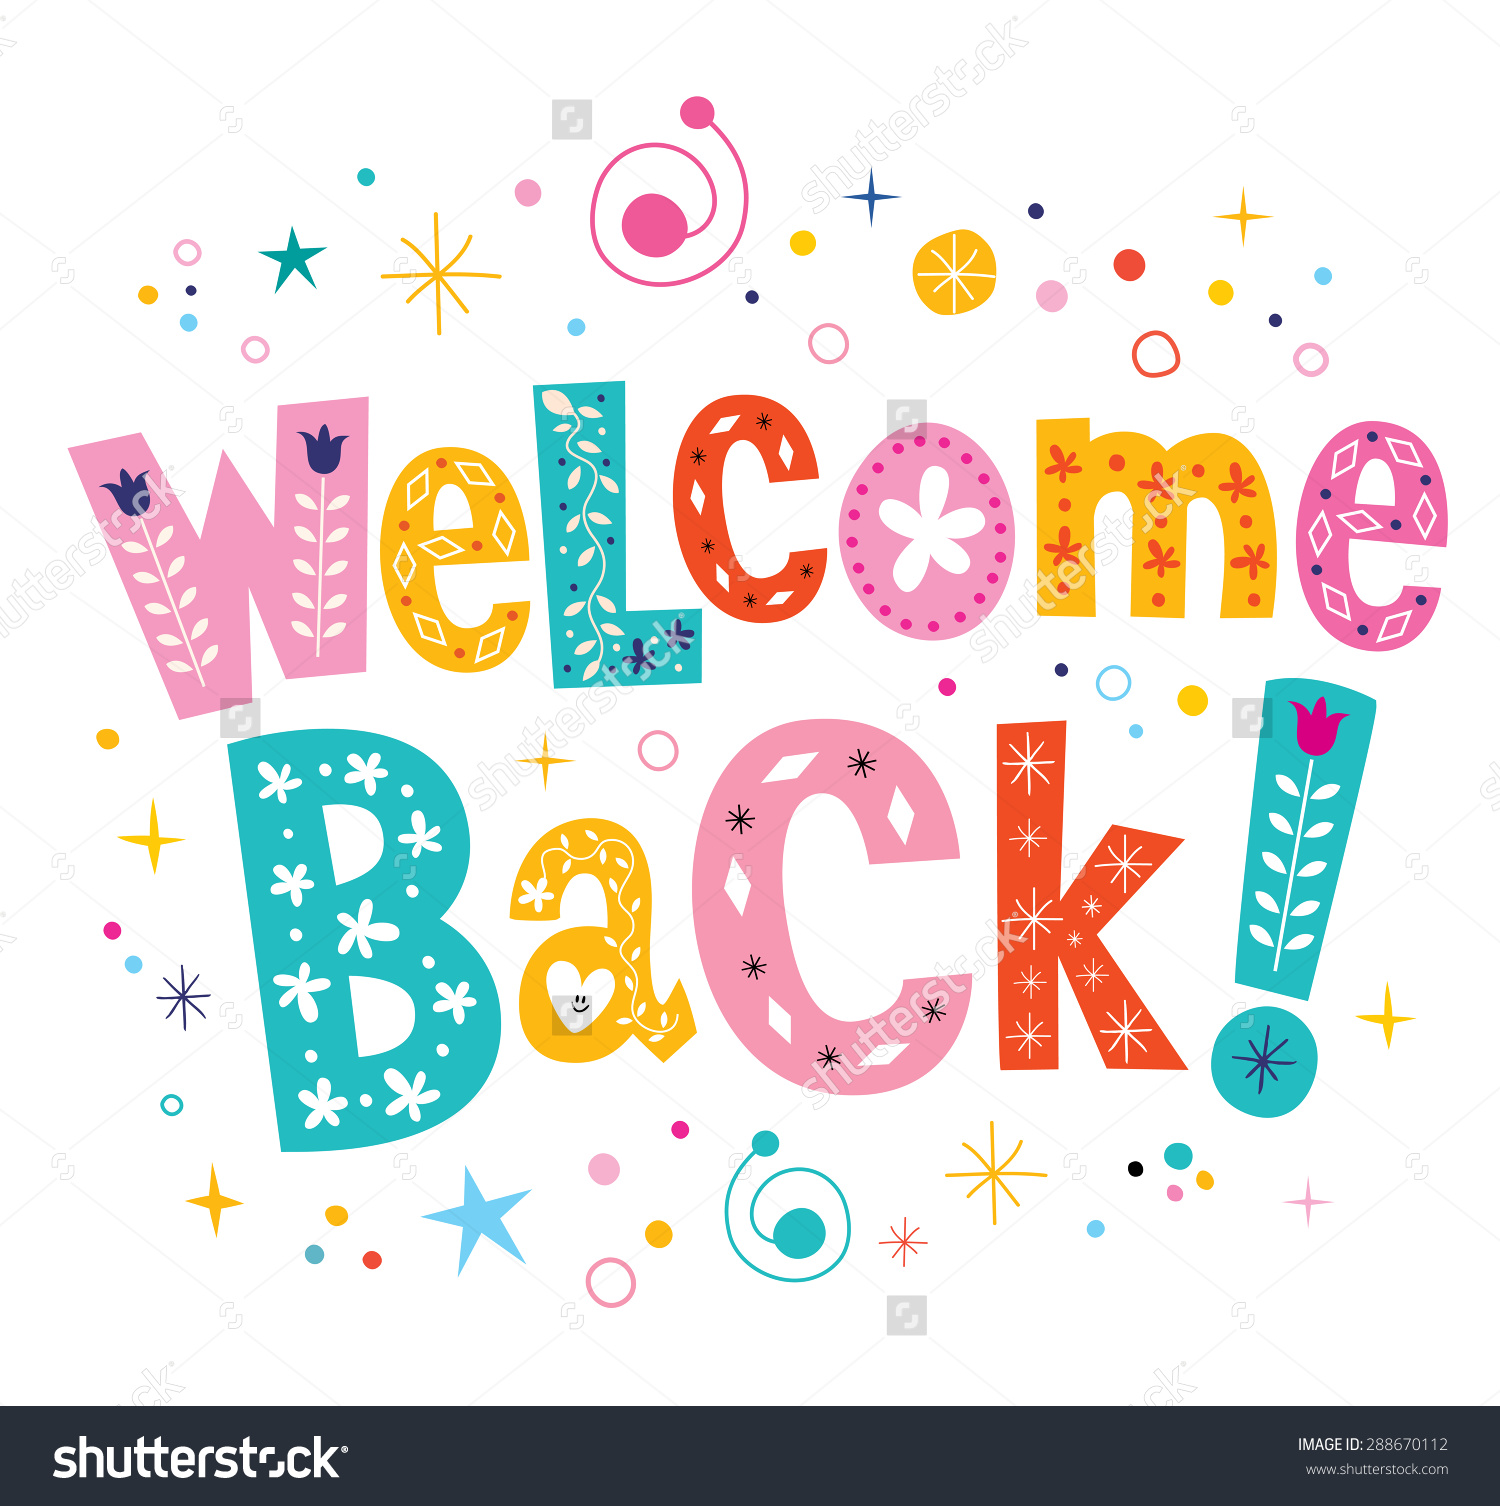 Welcome Back Signs Clipart. Save to a lightbox